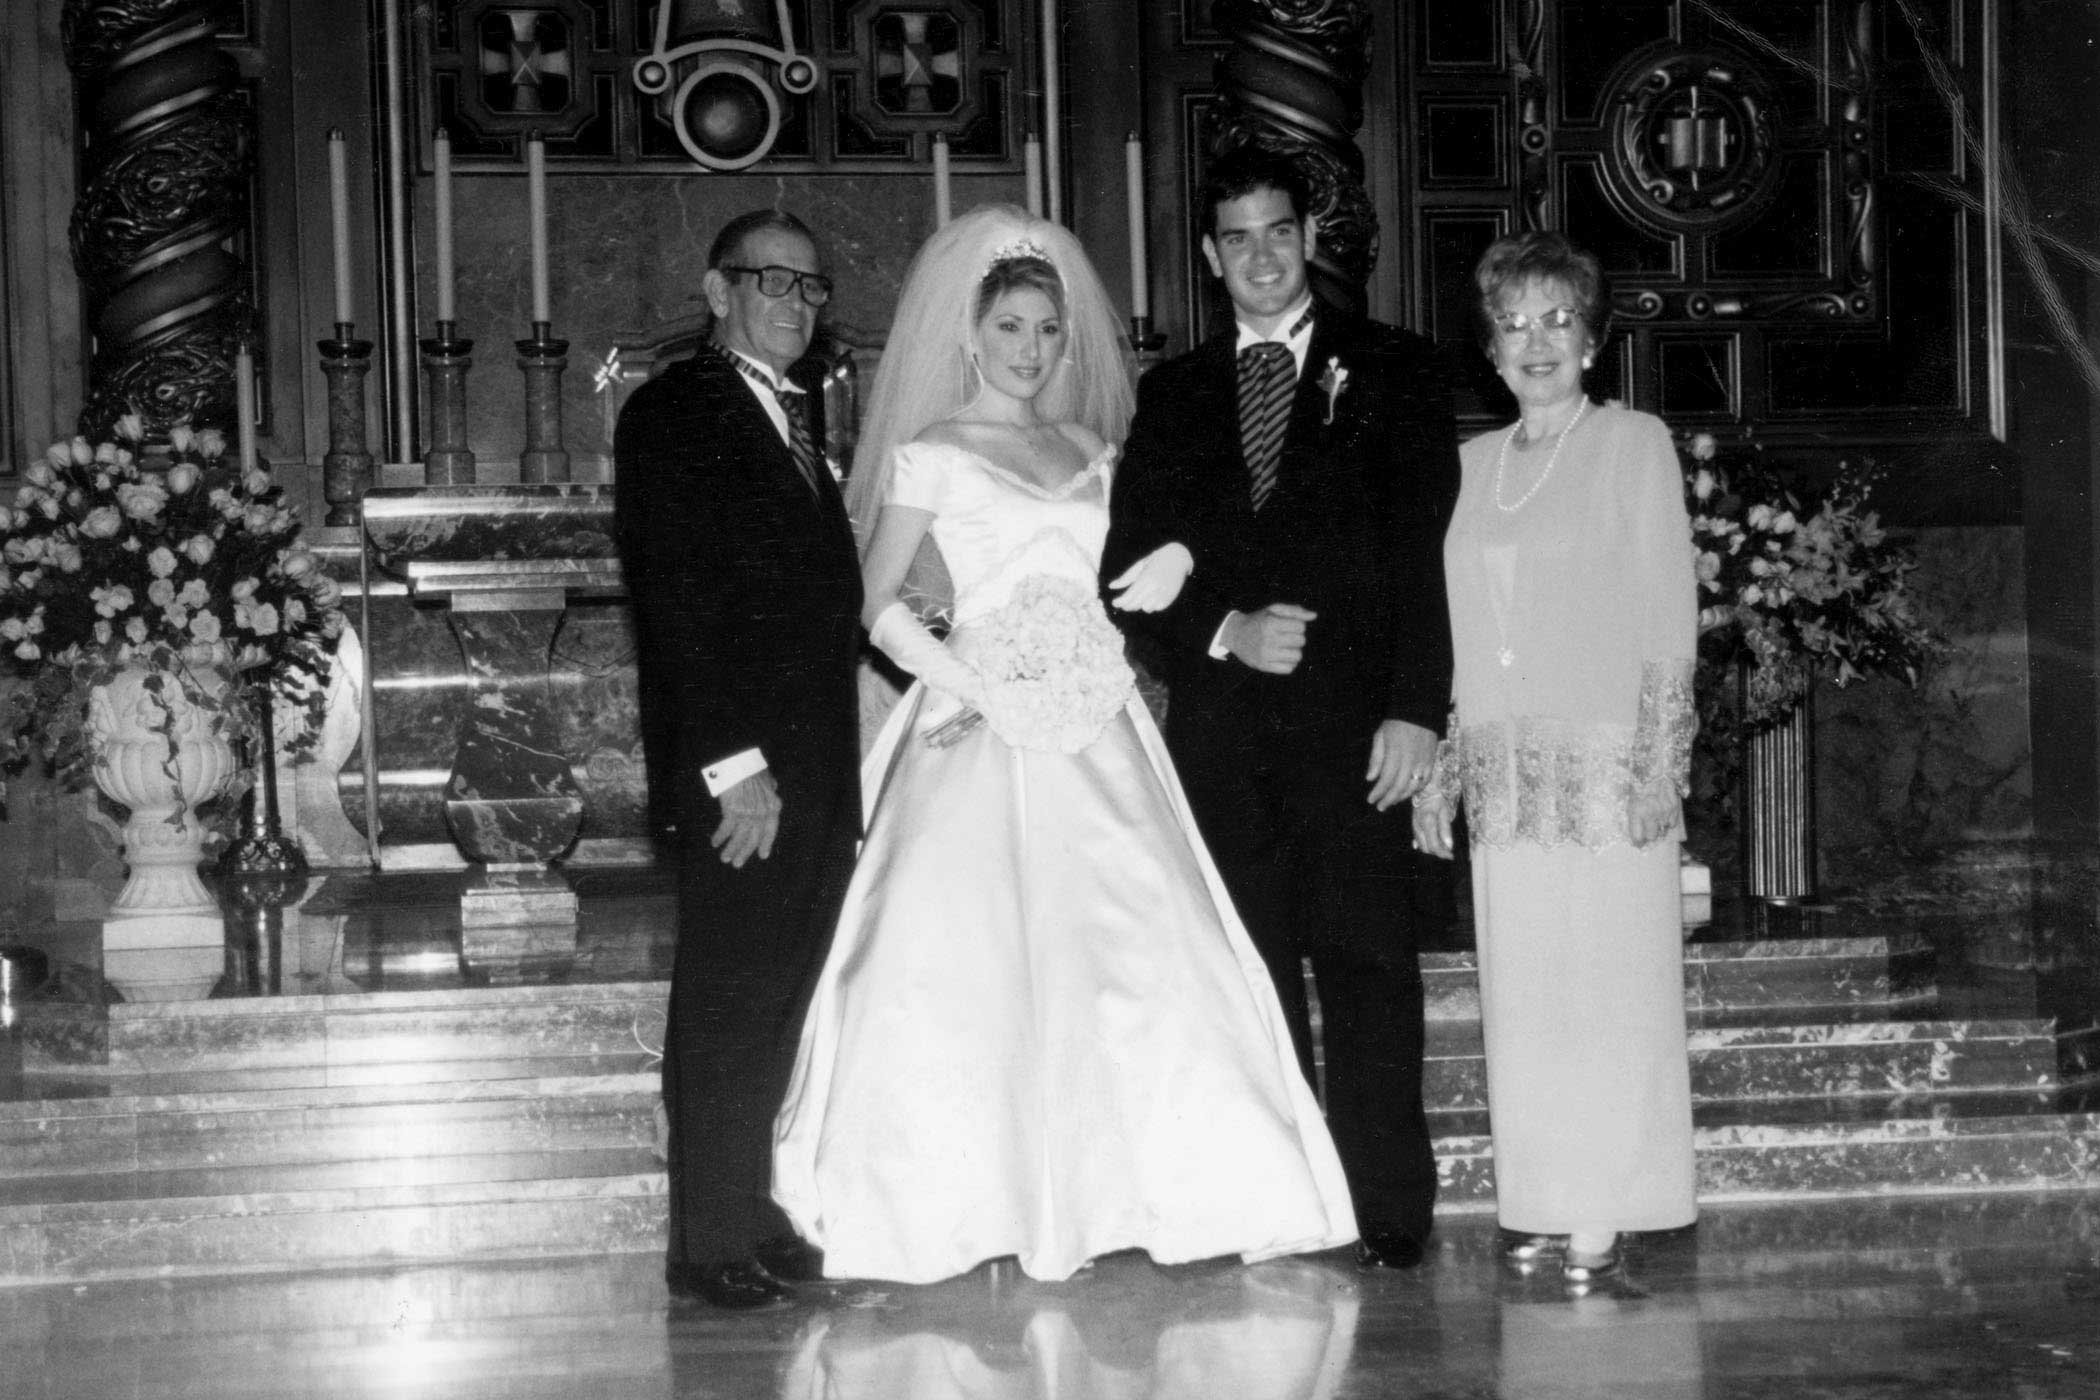 Marco Rubio with his wife, Jeanette and his parents on his wedding day on Oct. 17, 1998.